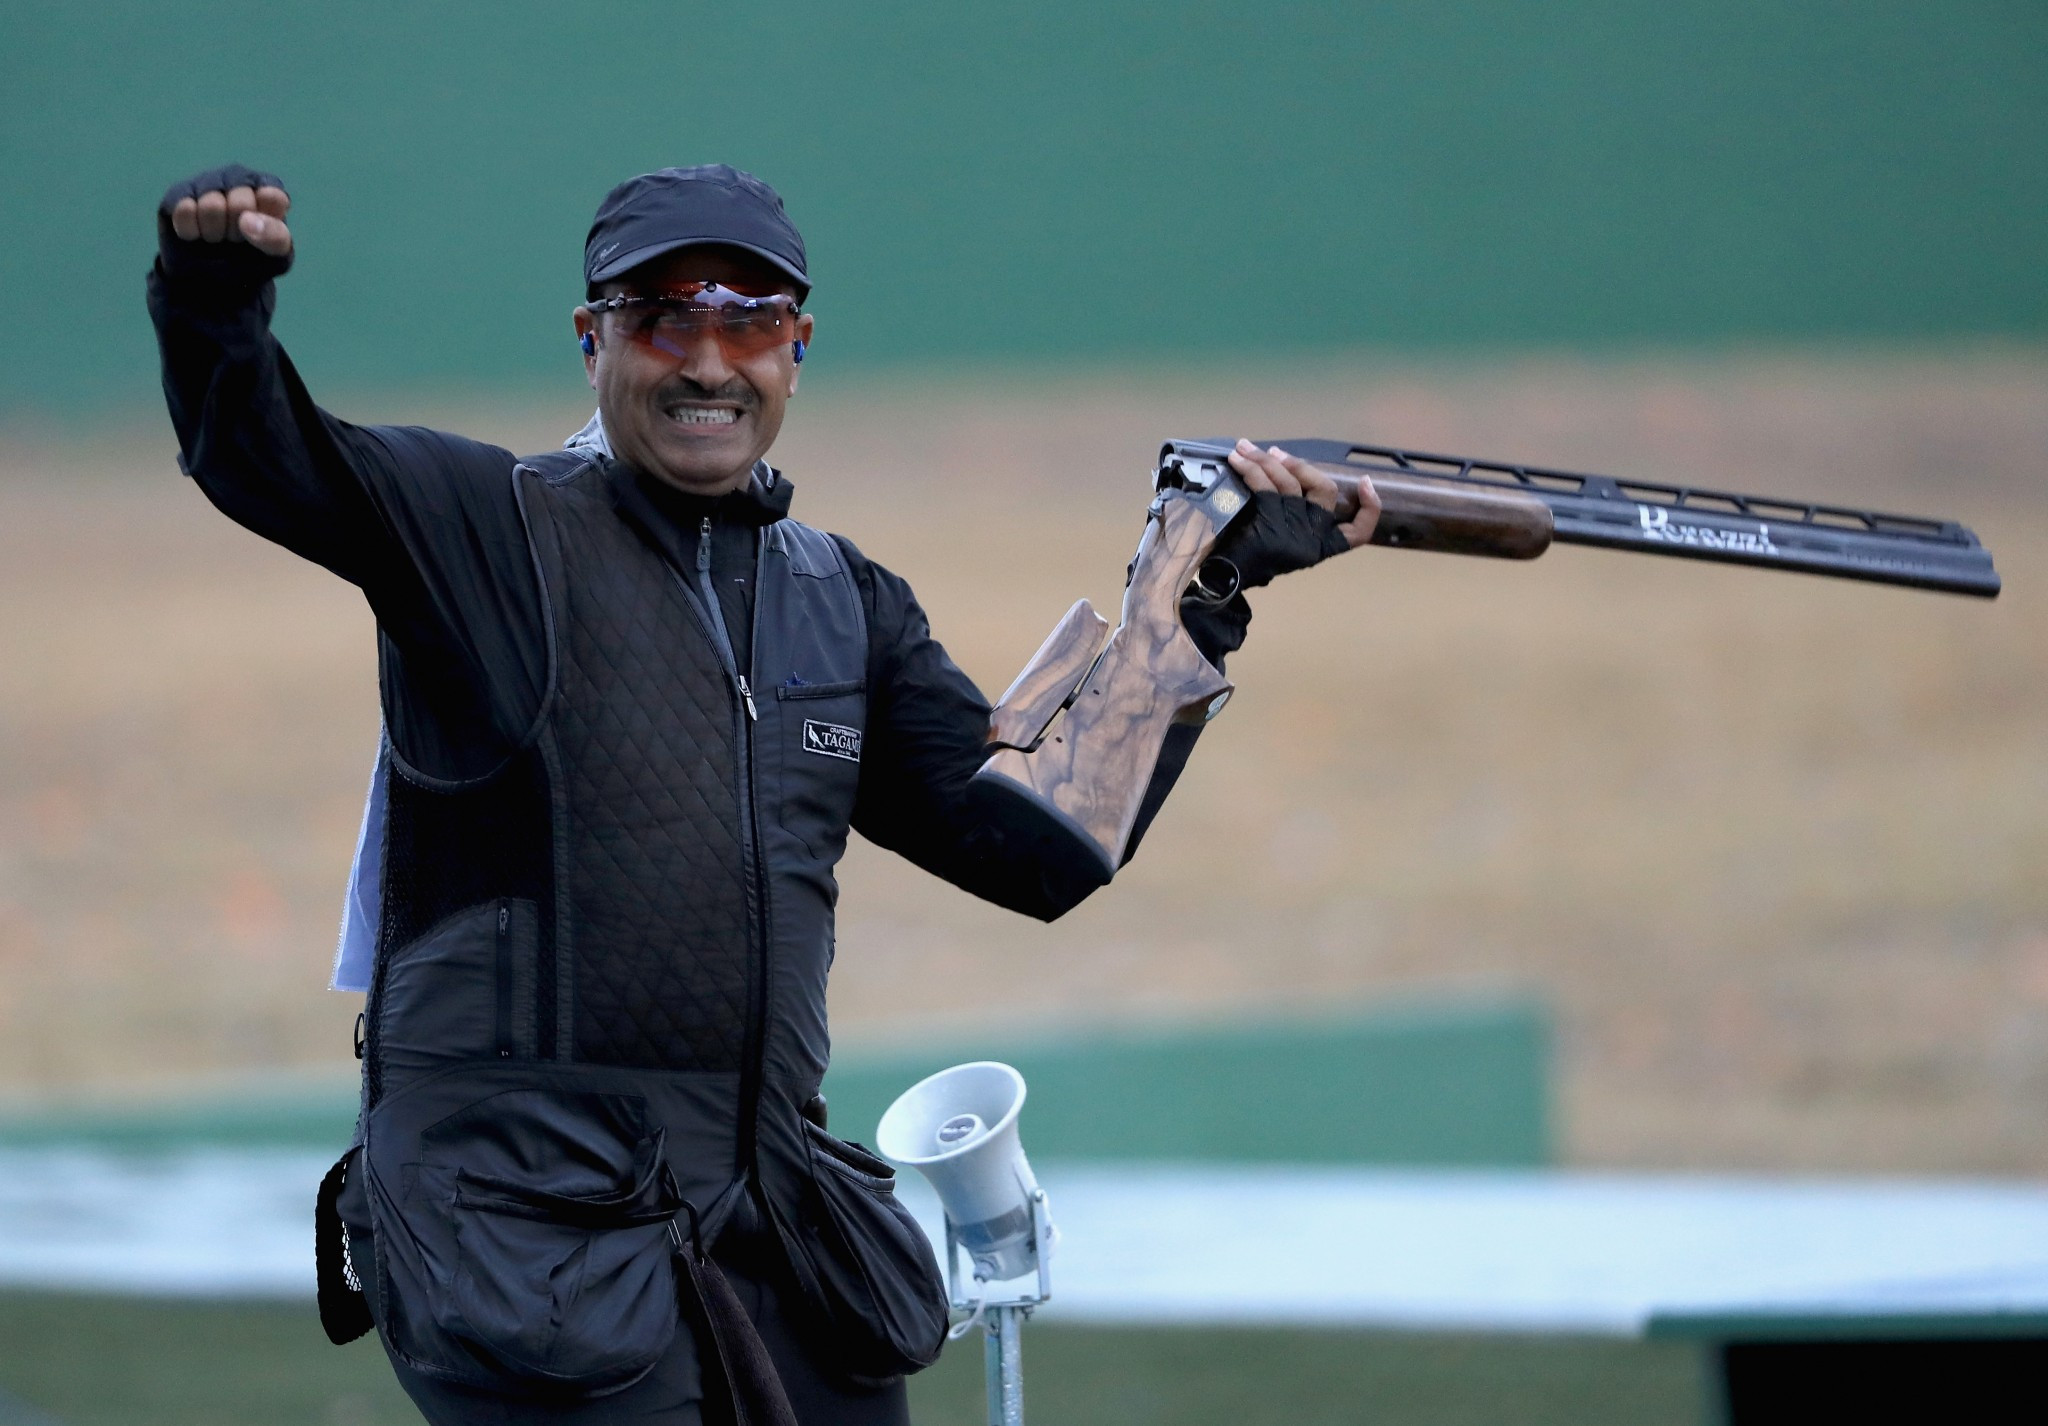 Fehaid Al-Deehani earned double trap gold as an independent athlete at Rio 2016 ©Getty Images